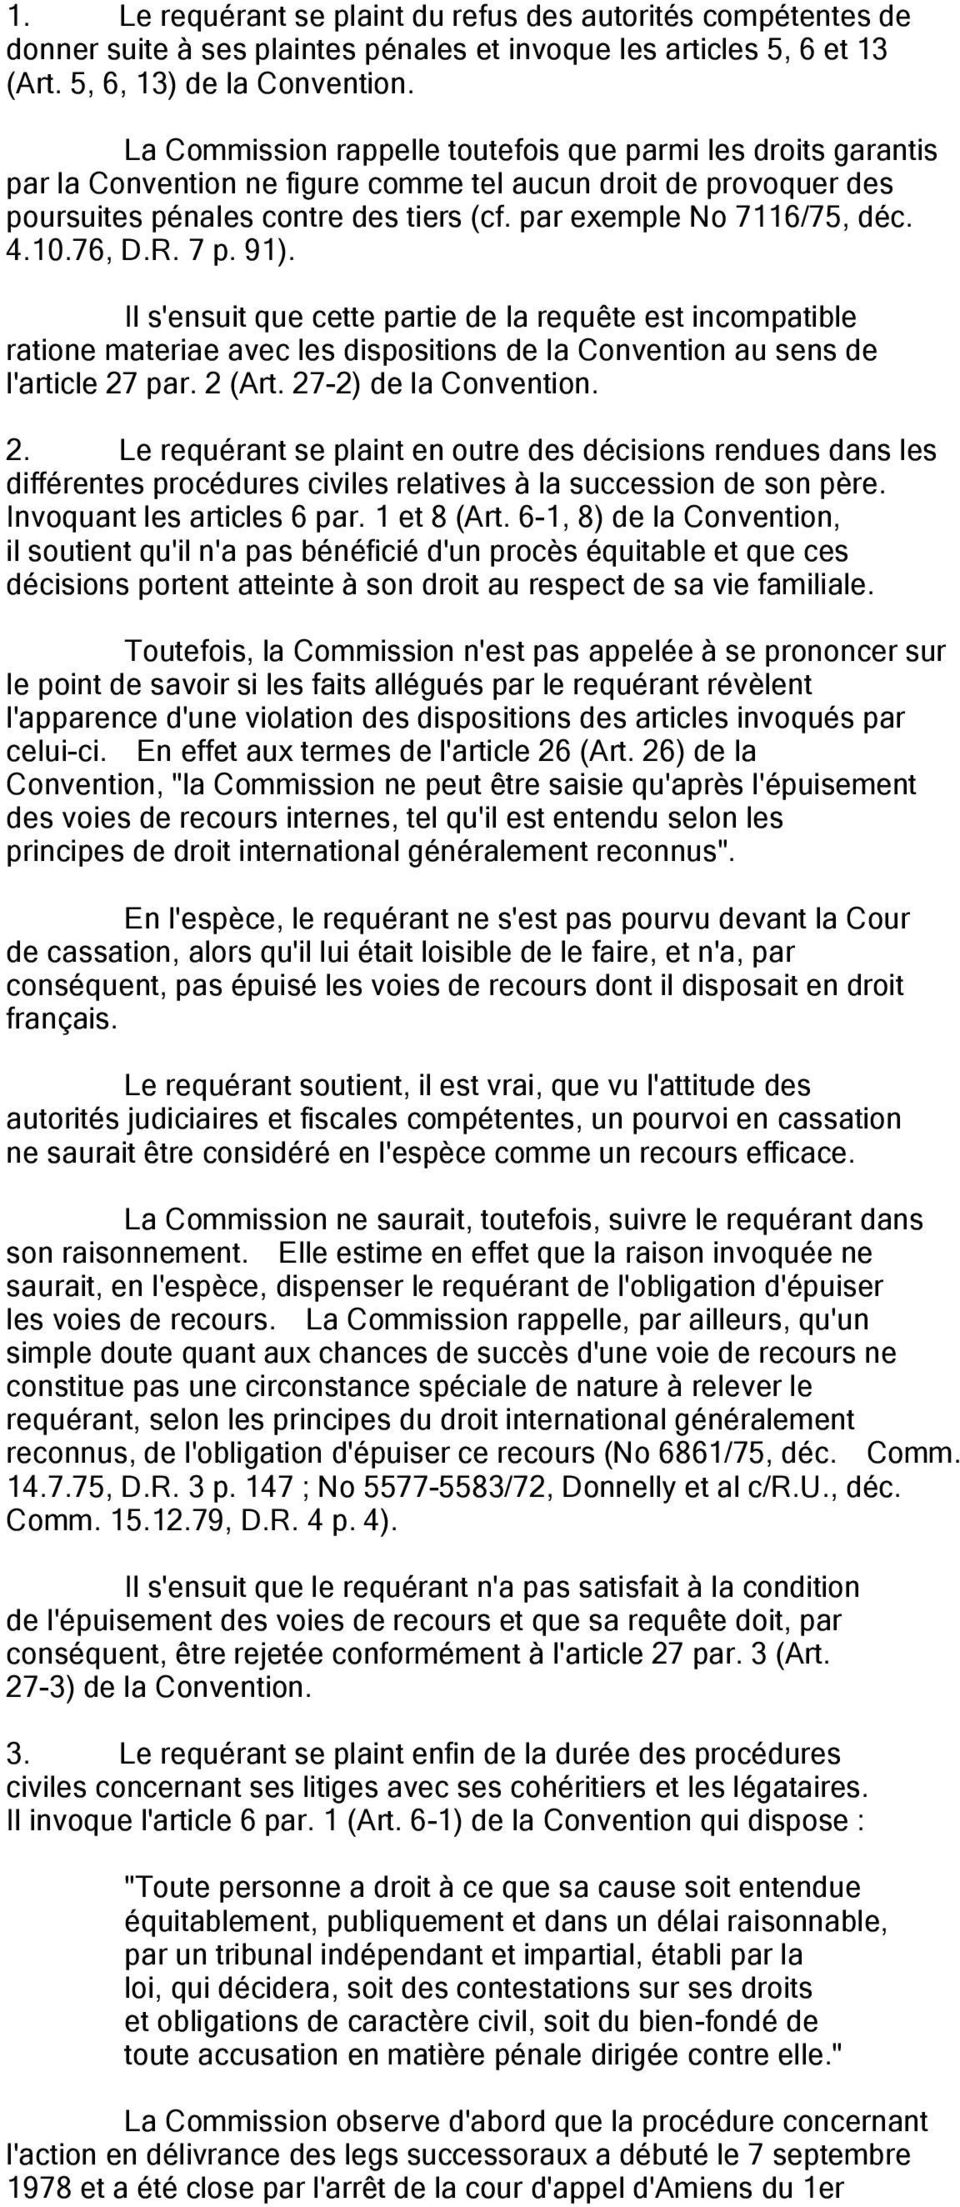 4.10.76, D.R. 7 p. 91). Il s'ensuit que cette partie de la requête est incompatible ratione materiae avec les dispositions de la Convention au sens de l'article 27 par. 2 (Art. 27-2) de la Convention.